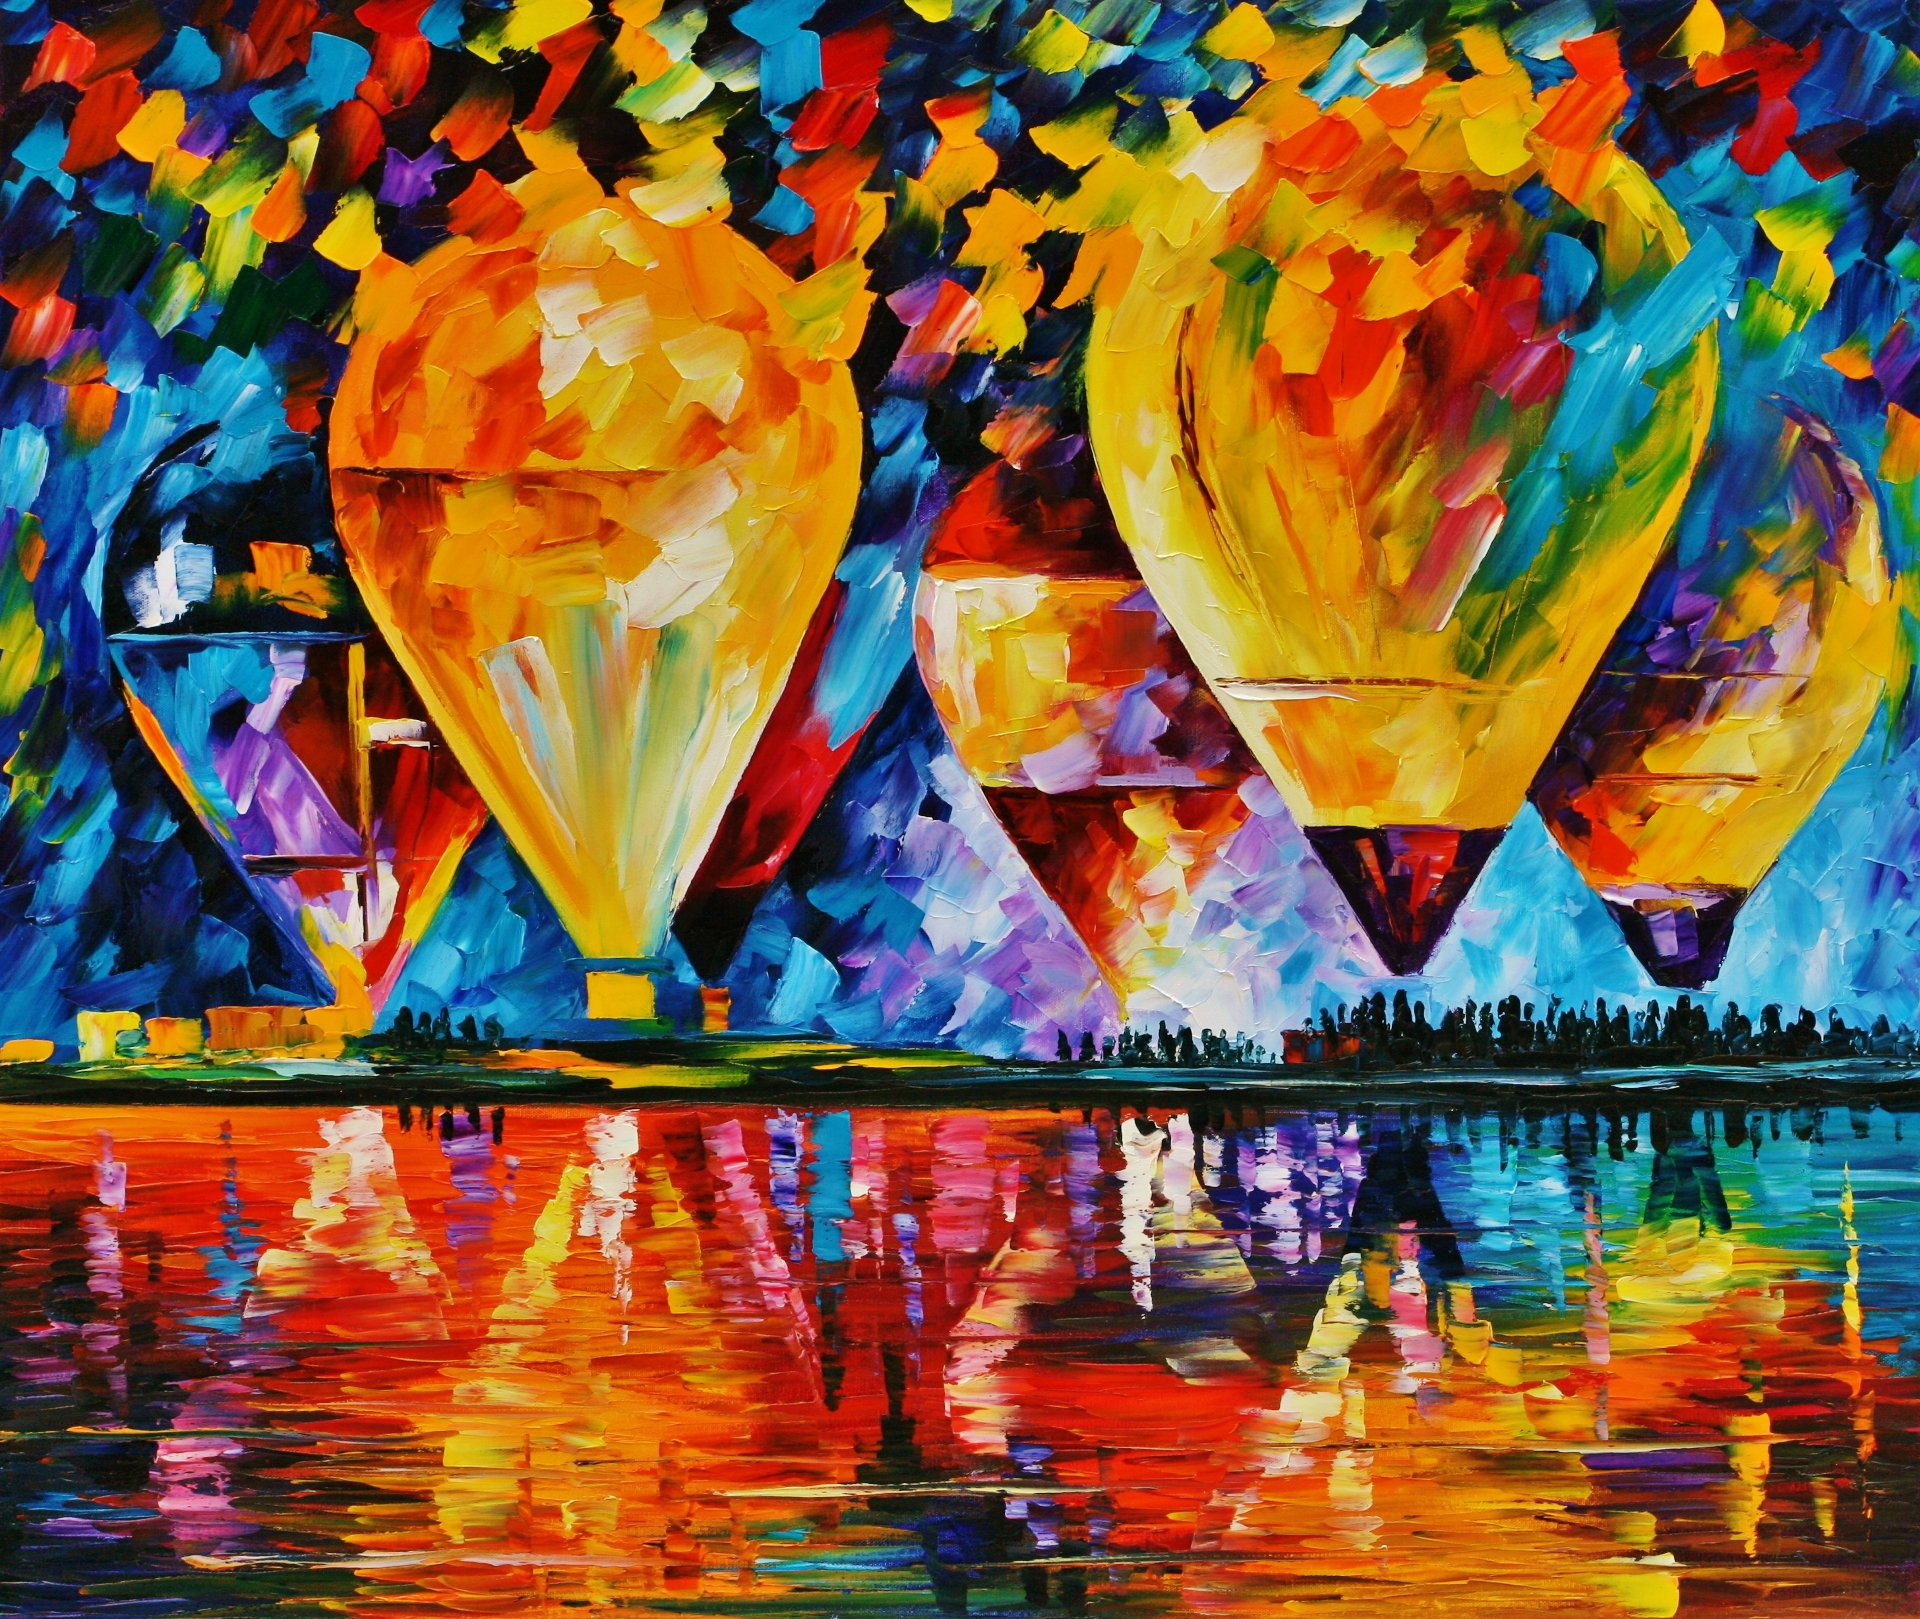 Leonid Afremov wallpaper 21jpg 1920x1619